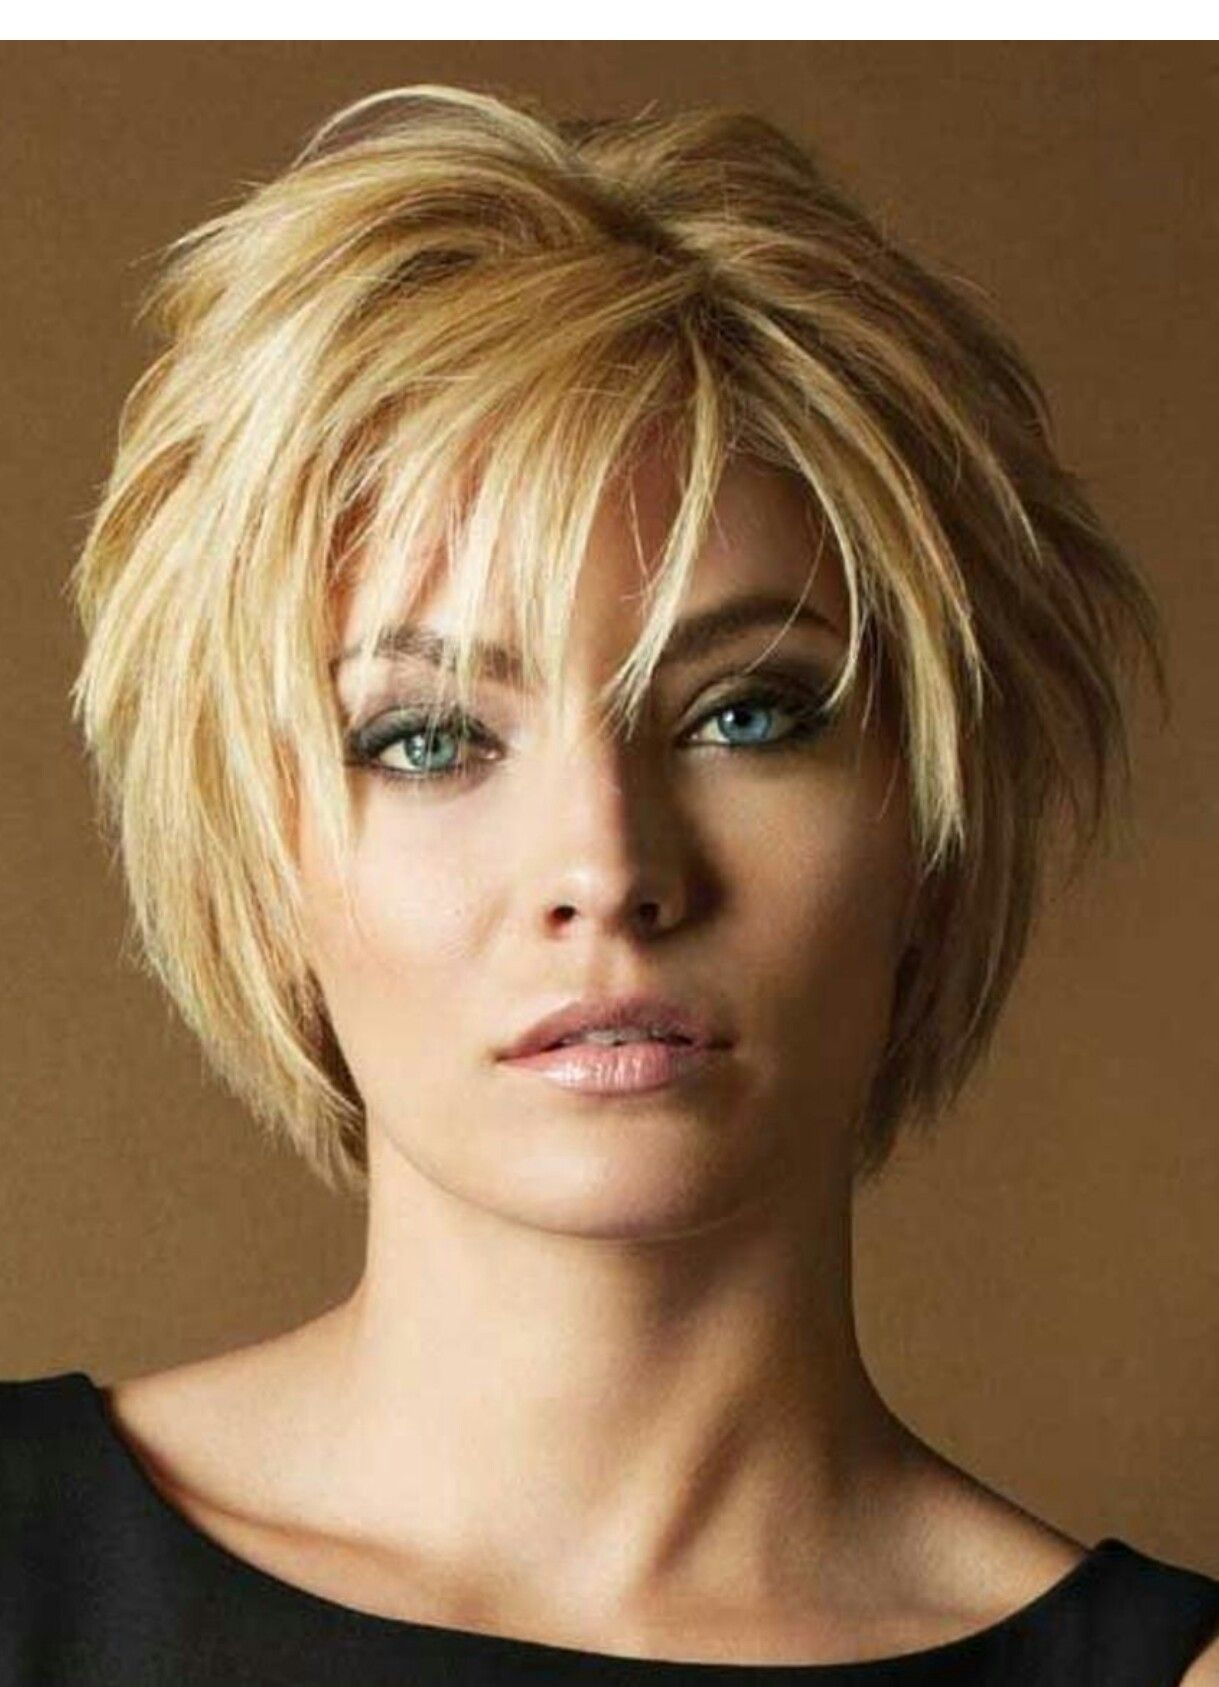 Sharon stone spiky short haircut for older women over 50 getty images - Love Short Hairstyles For Women Over Wanna Give Your Hair A New Look Short Hairstyles For Women Over 50 Is A Good Choice For You